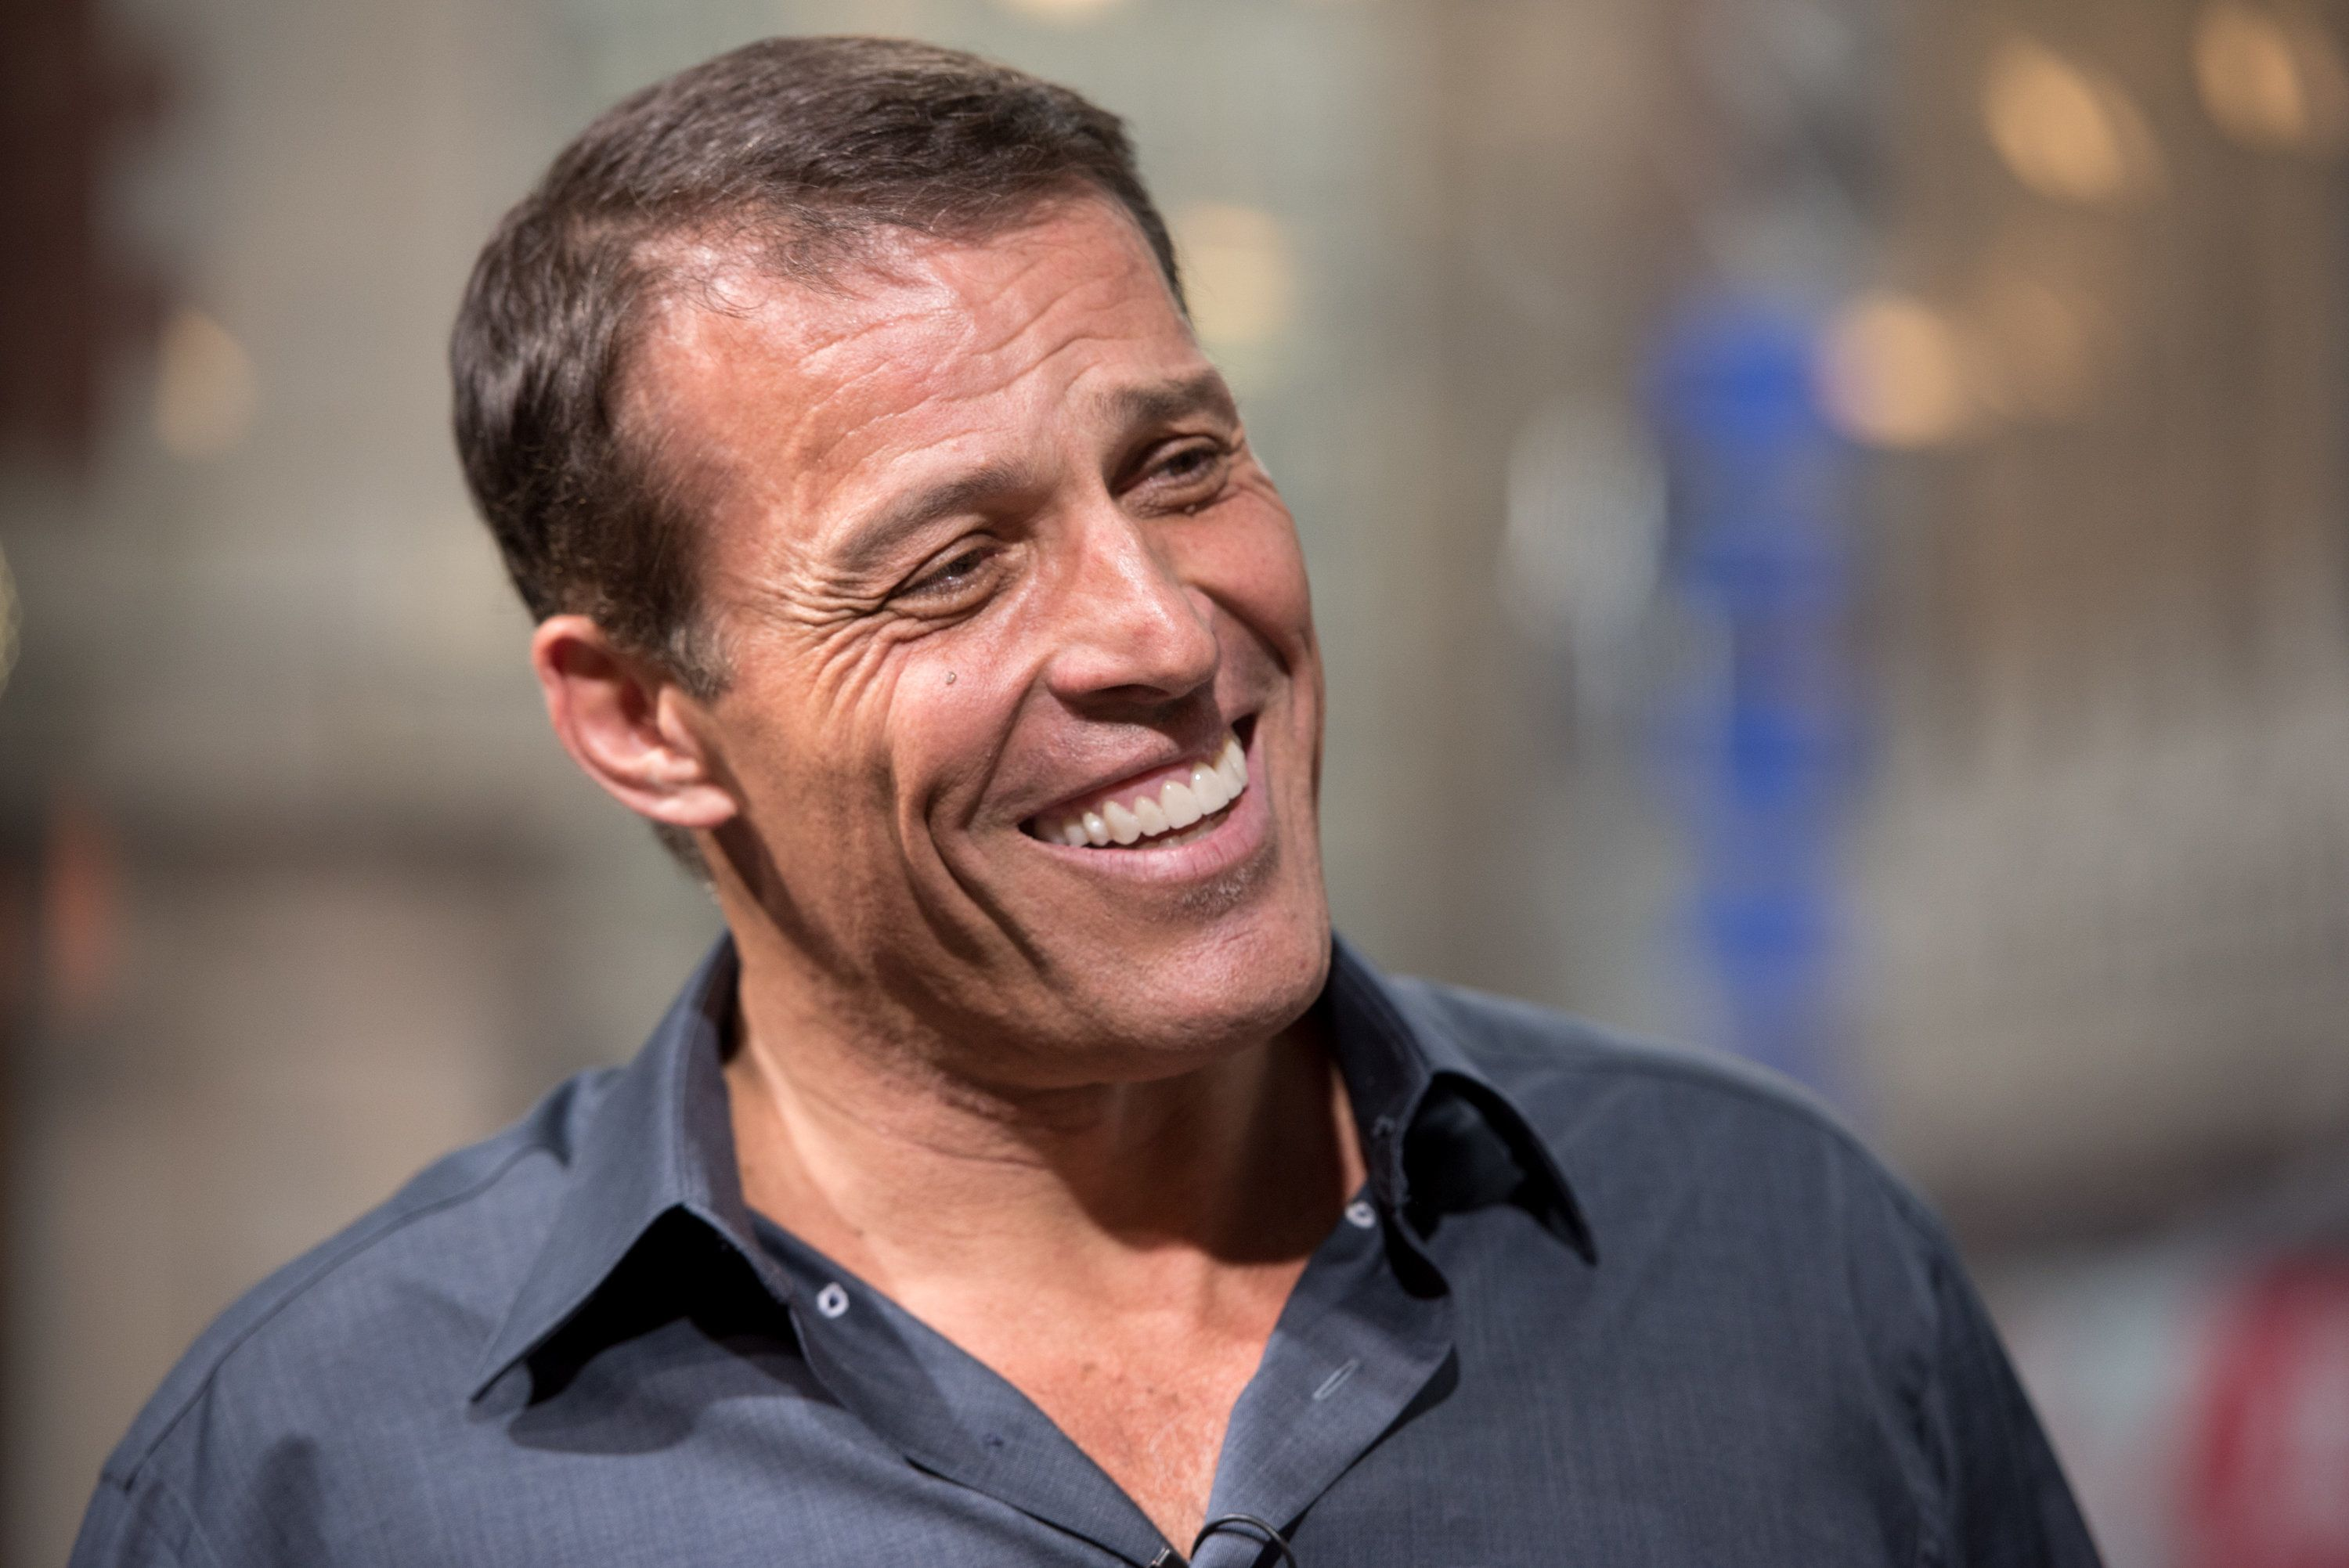 NEW YORK, NY - JULY 13:  Tony Robbins visits 'Extra' at H&M Times Square on July 13, 2016 in New York City.  (Photo by Noam Galai/Getty Images for Extra)